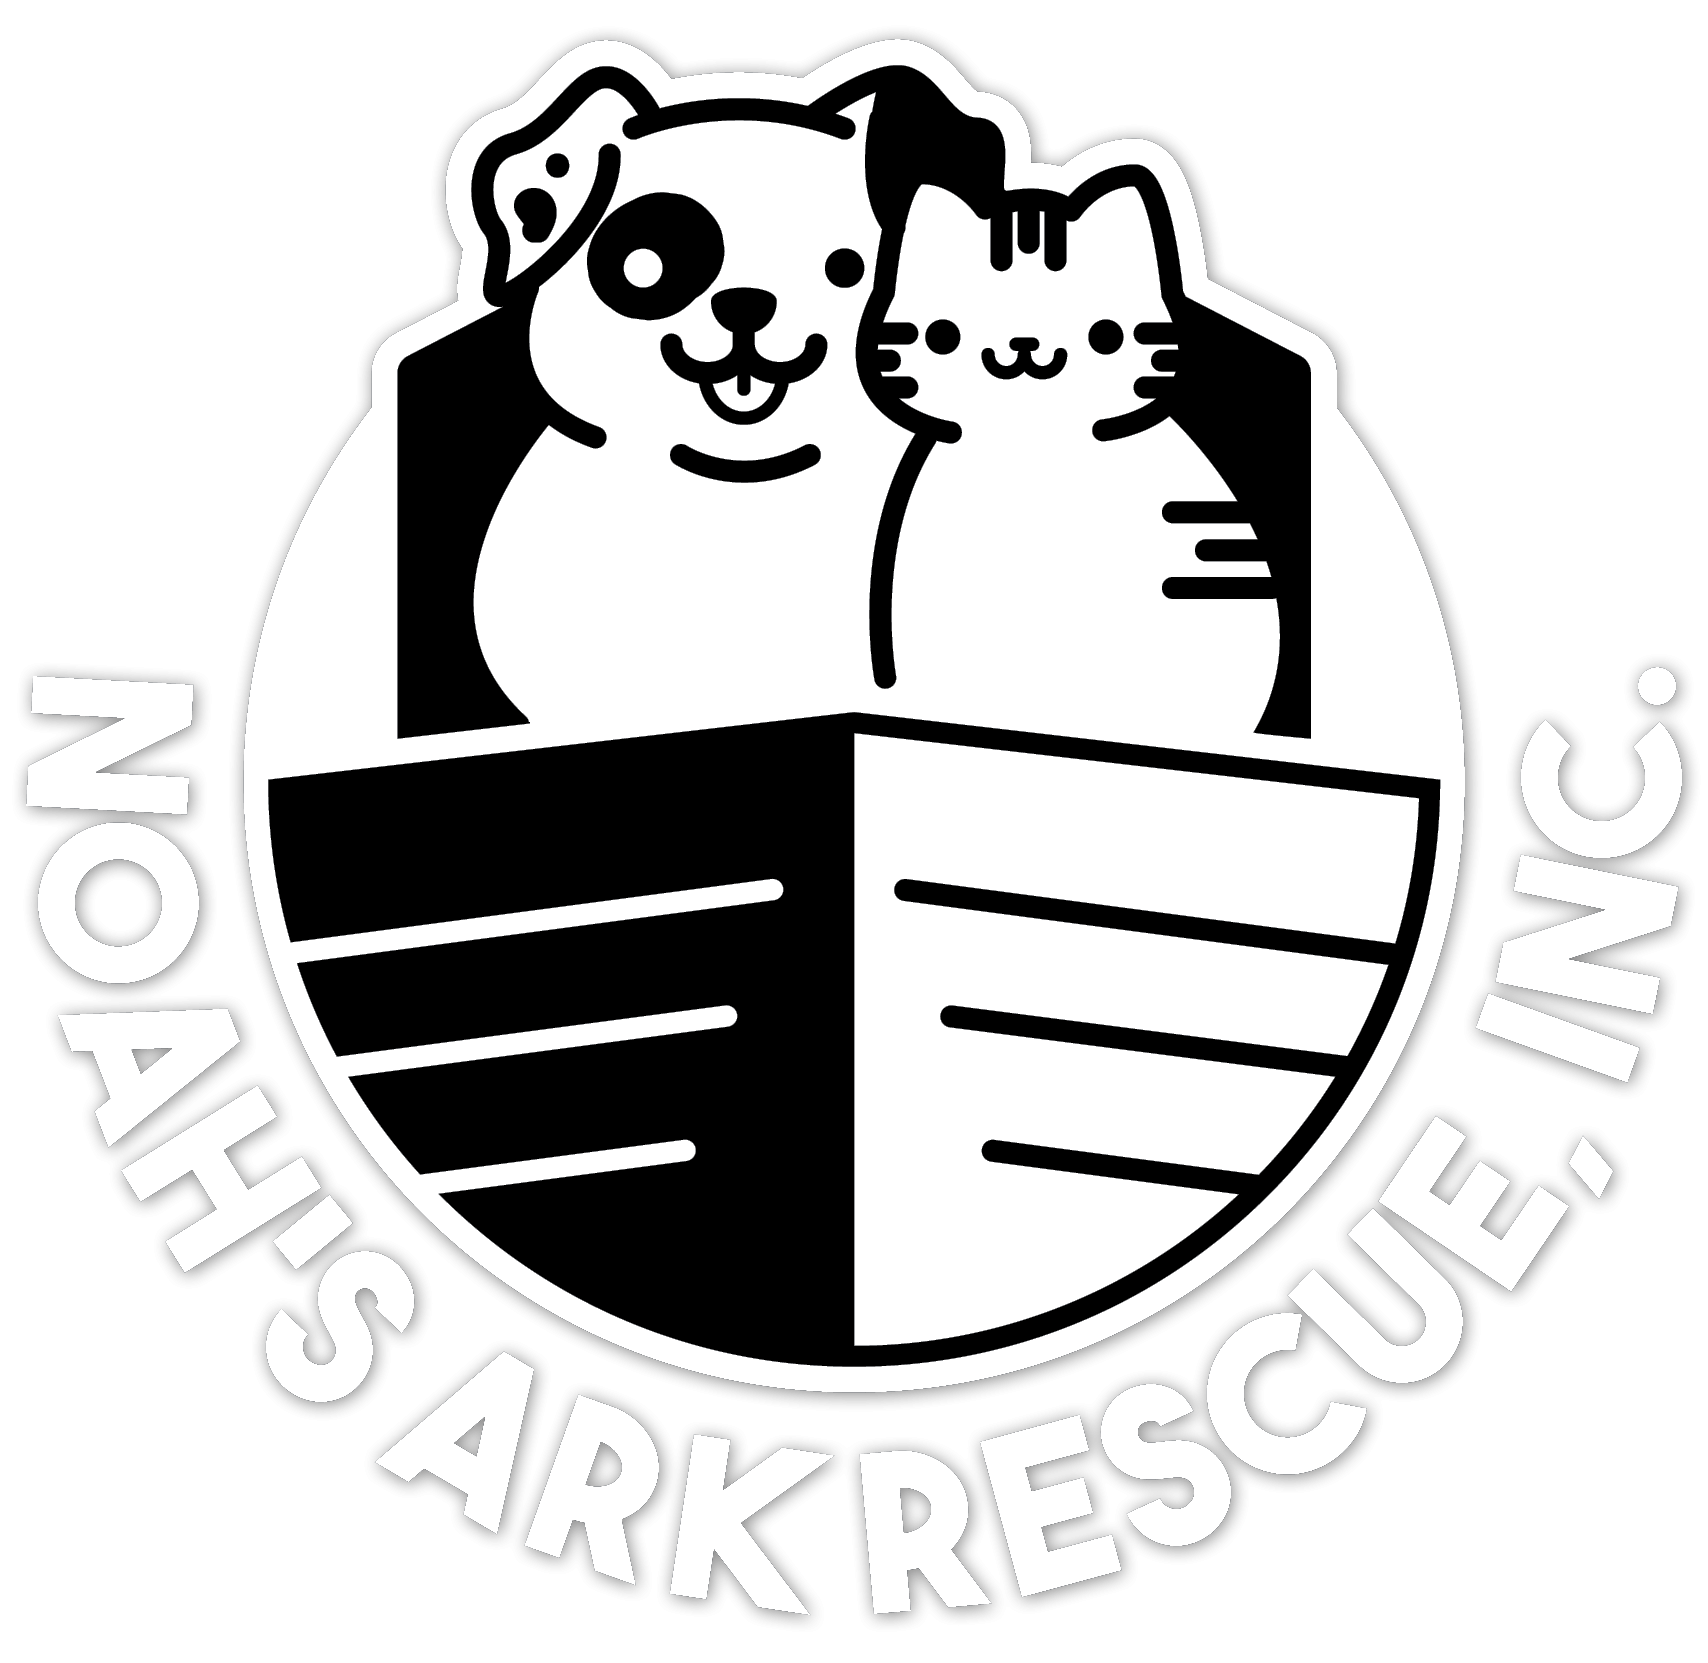 Noah's Ark Rescue, Inc.